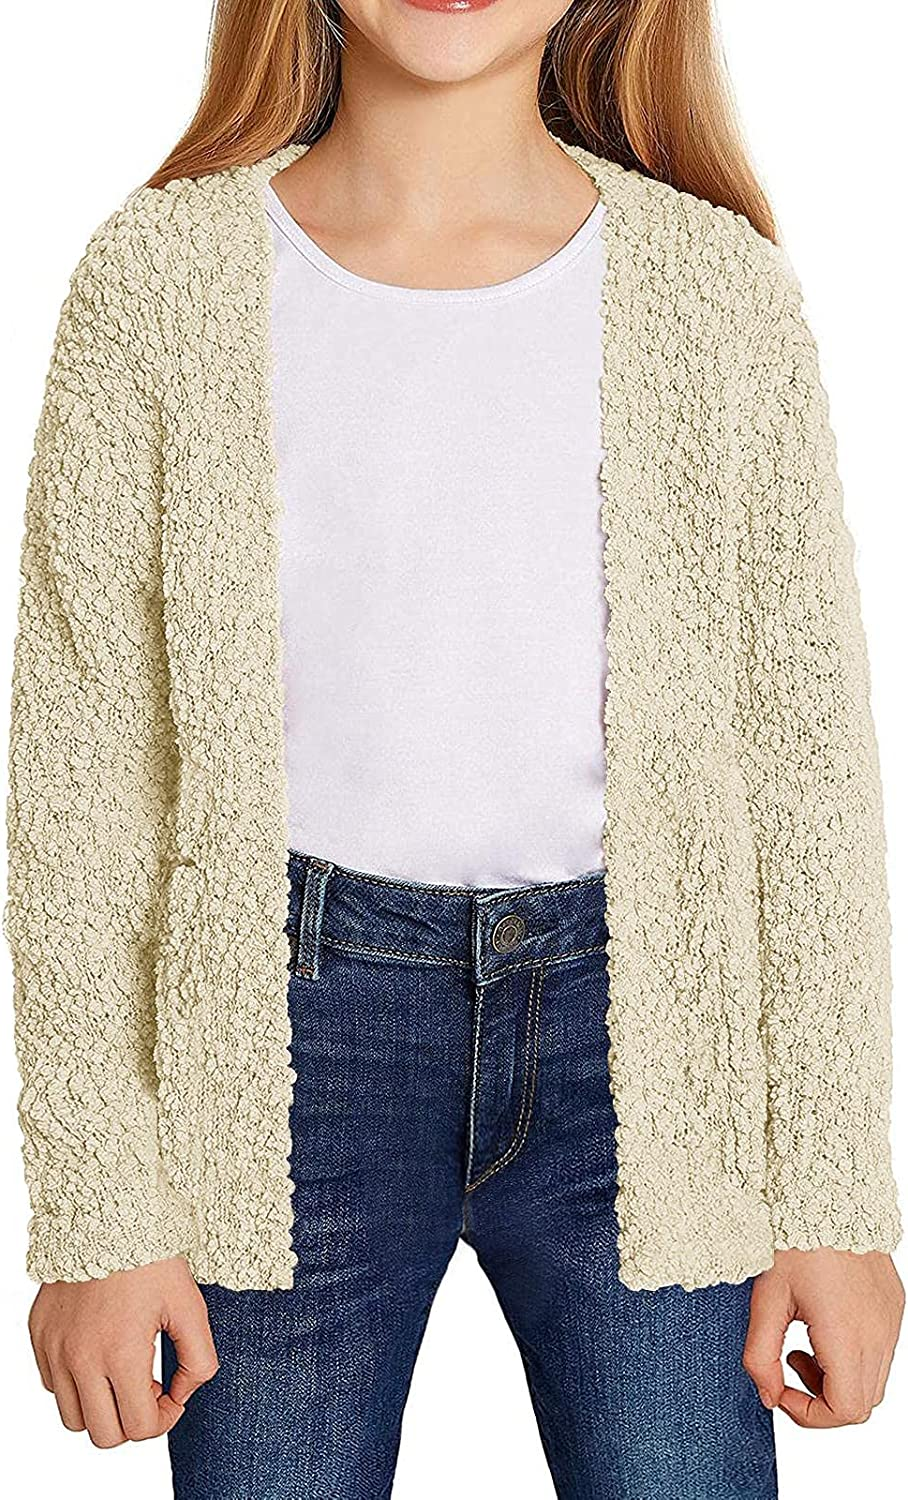 Girls Kids Max 80% OFF Casual Cardigans Sweaters Front Knitted Sweater Genuine Open